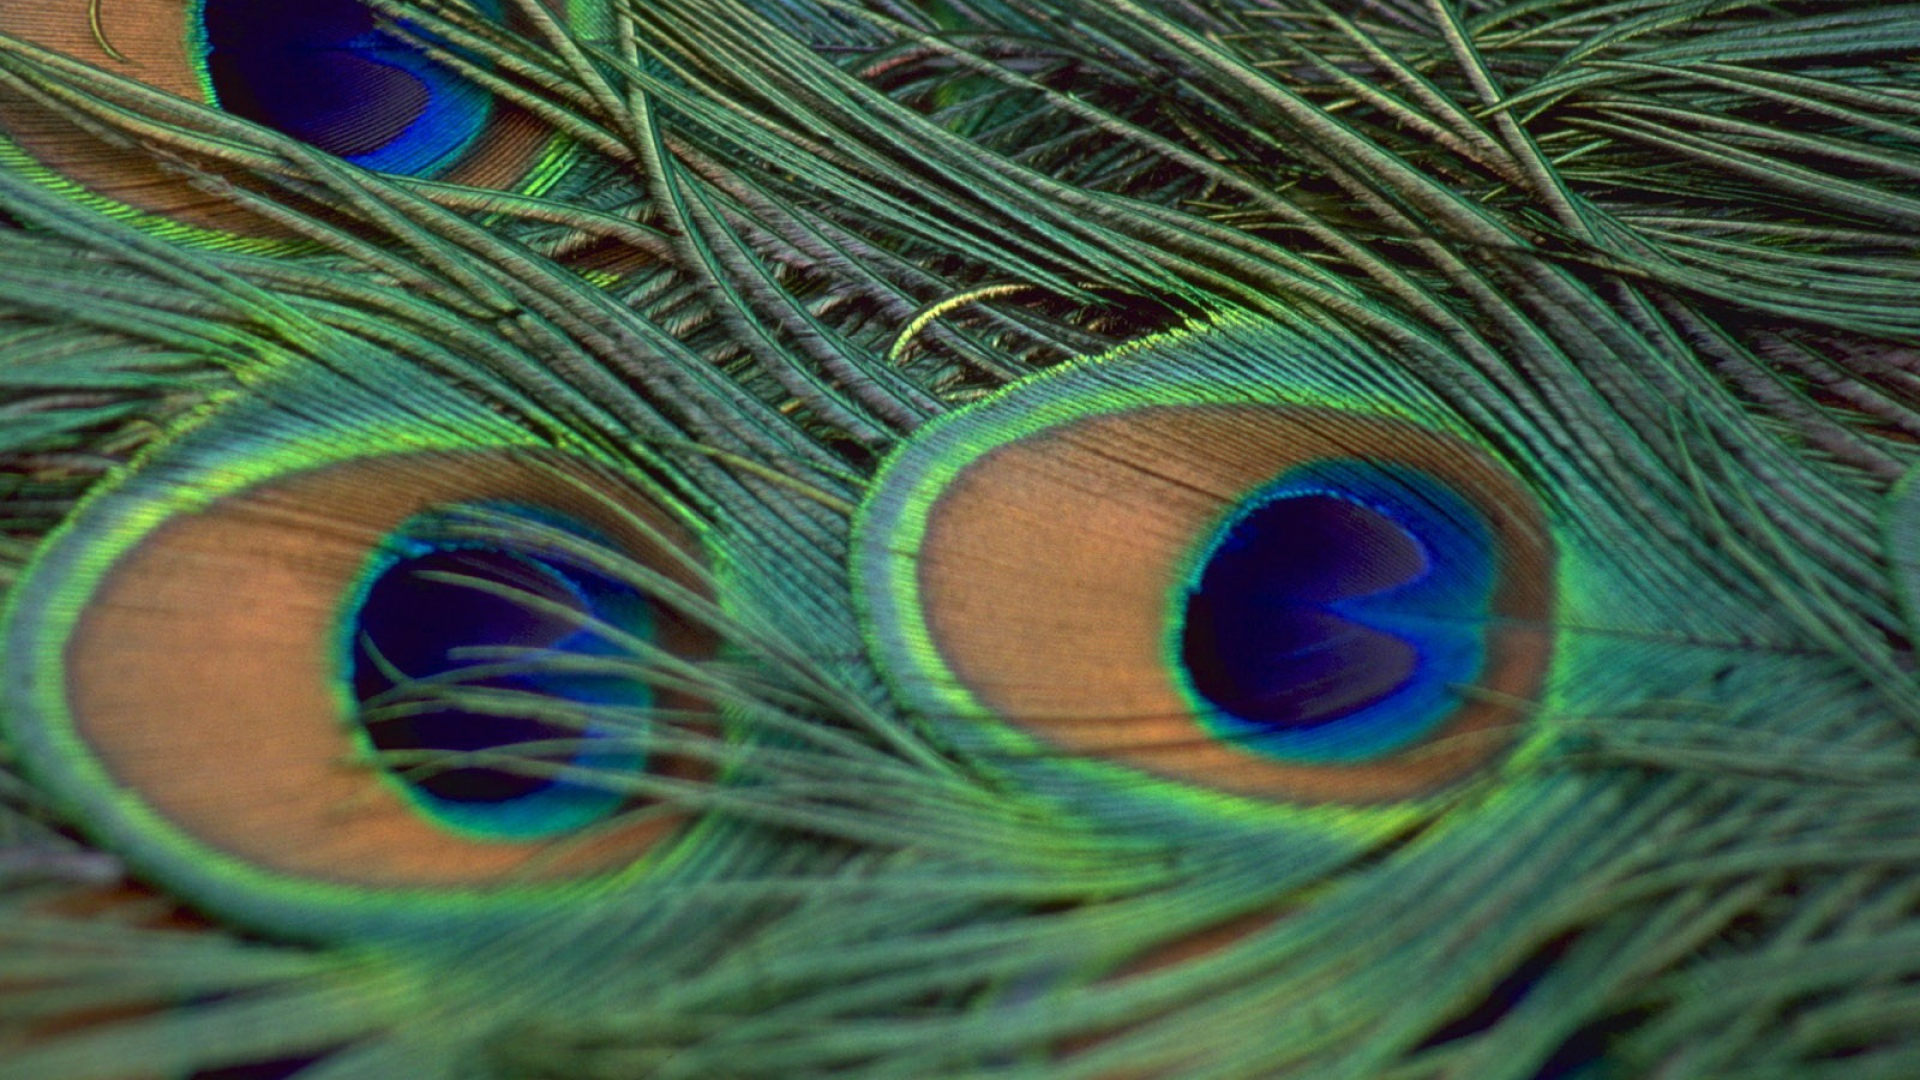 Peacock Feather Wallpapers Peacock Feather HD Pictures 1920x1080